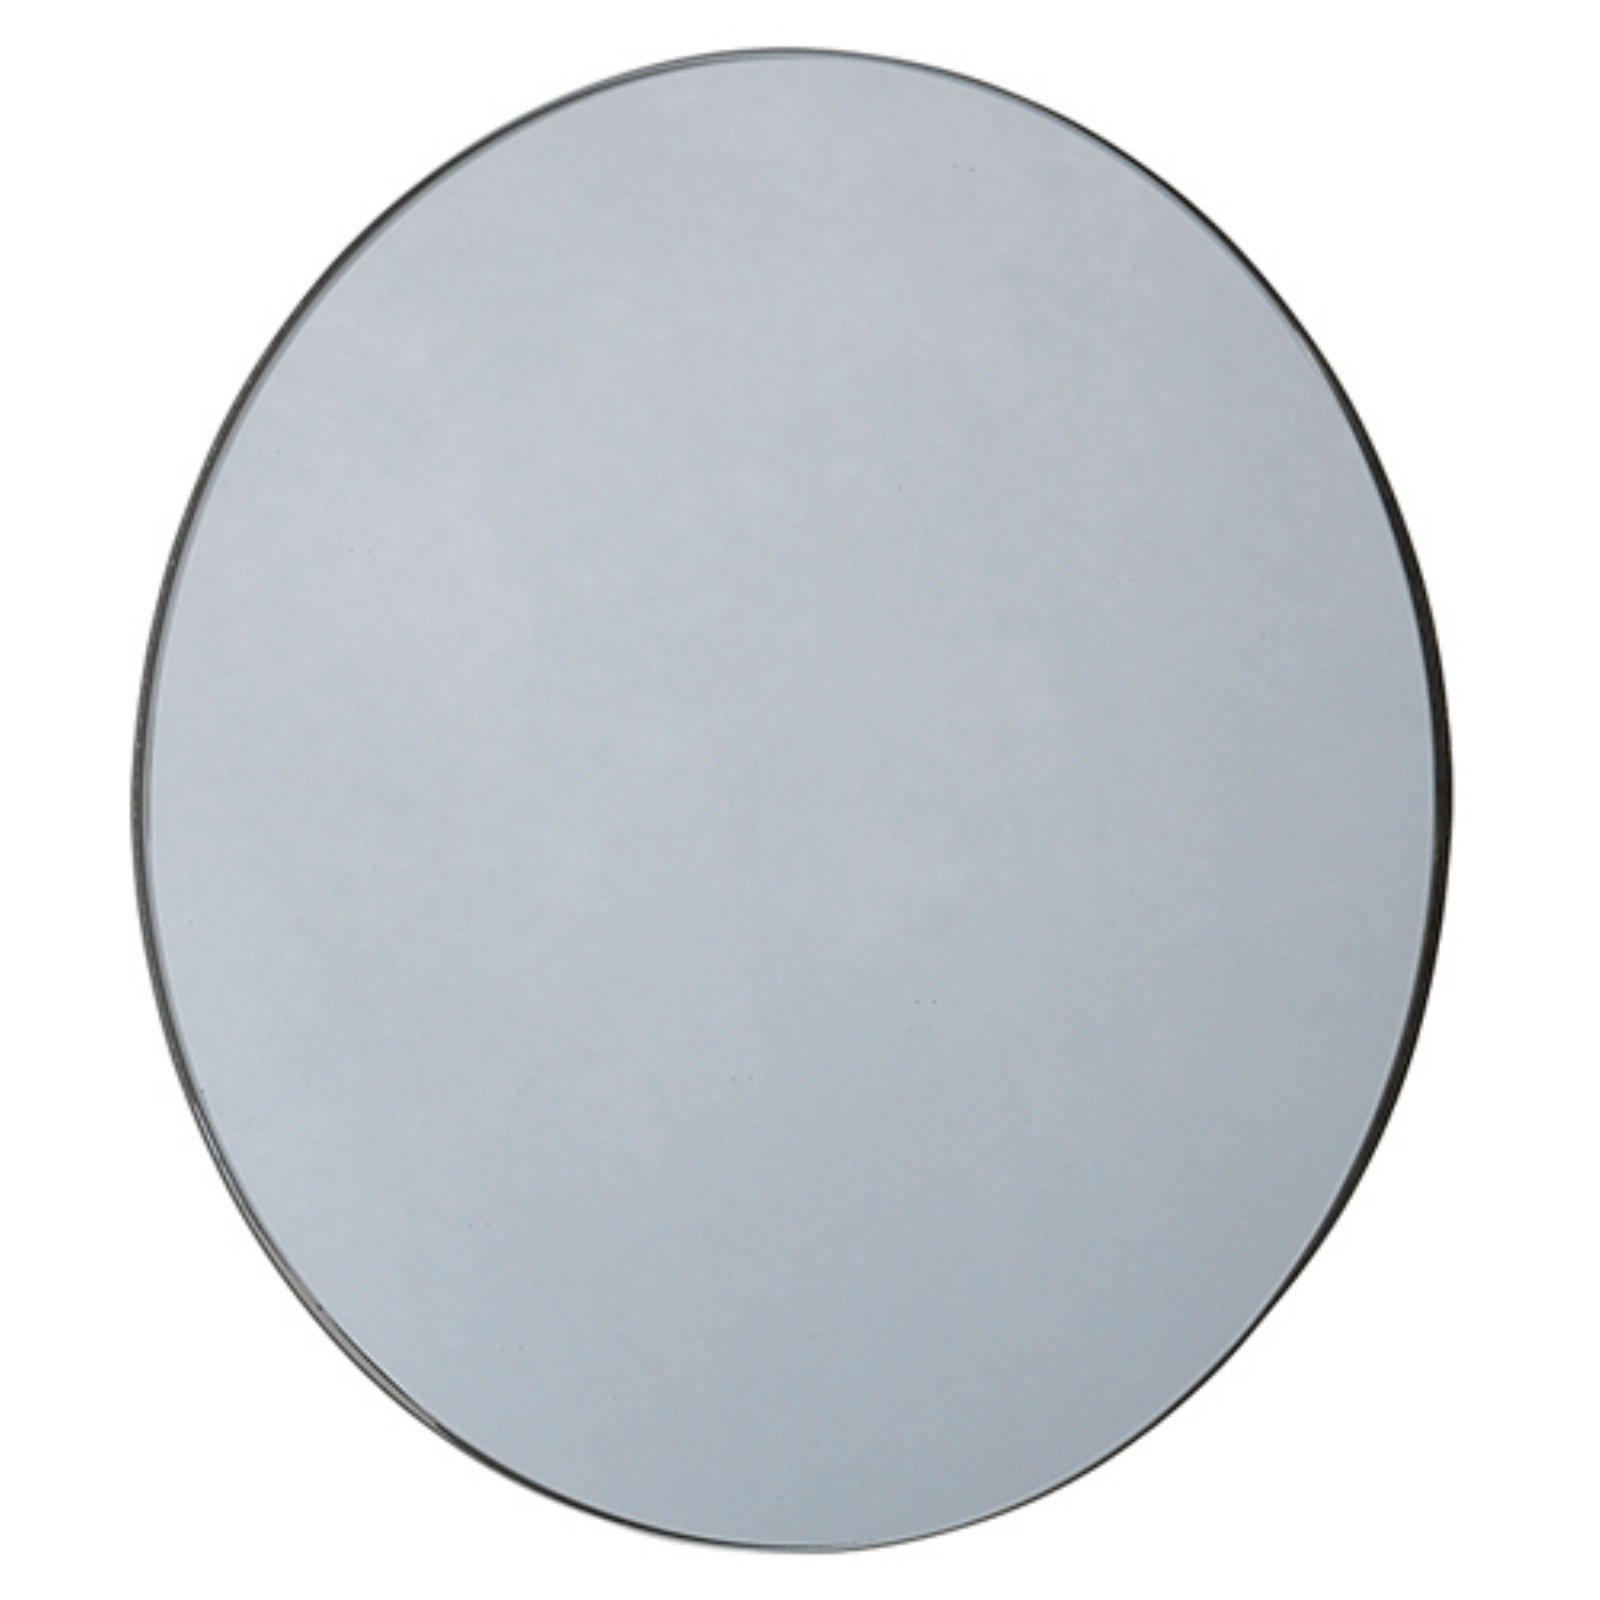 Blomus Vision Small Round Accent Wall Mirror | Products In In Reign Frameless Oval Scalloped Beveled Wall Mirrors (Image 4 of 20)